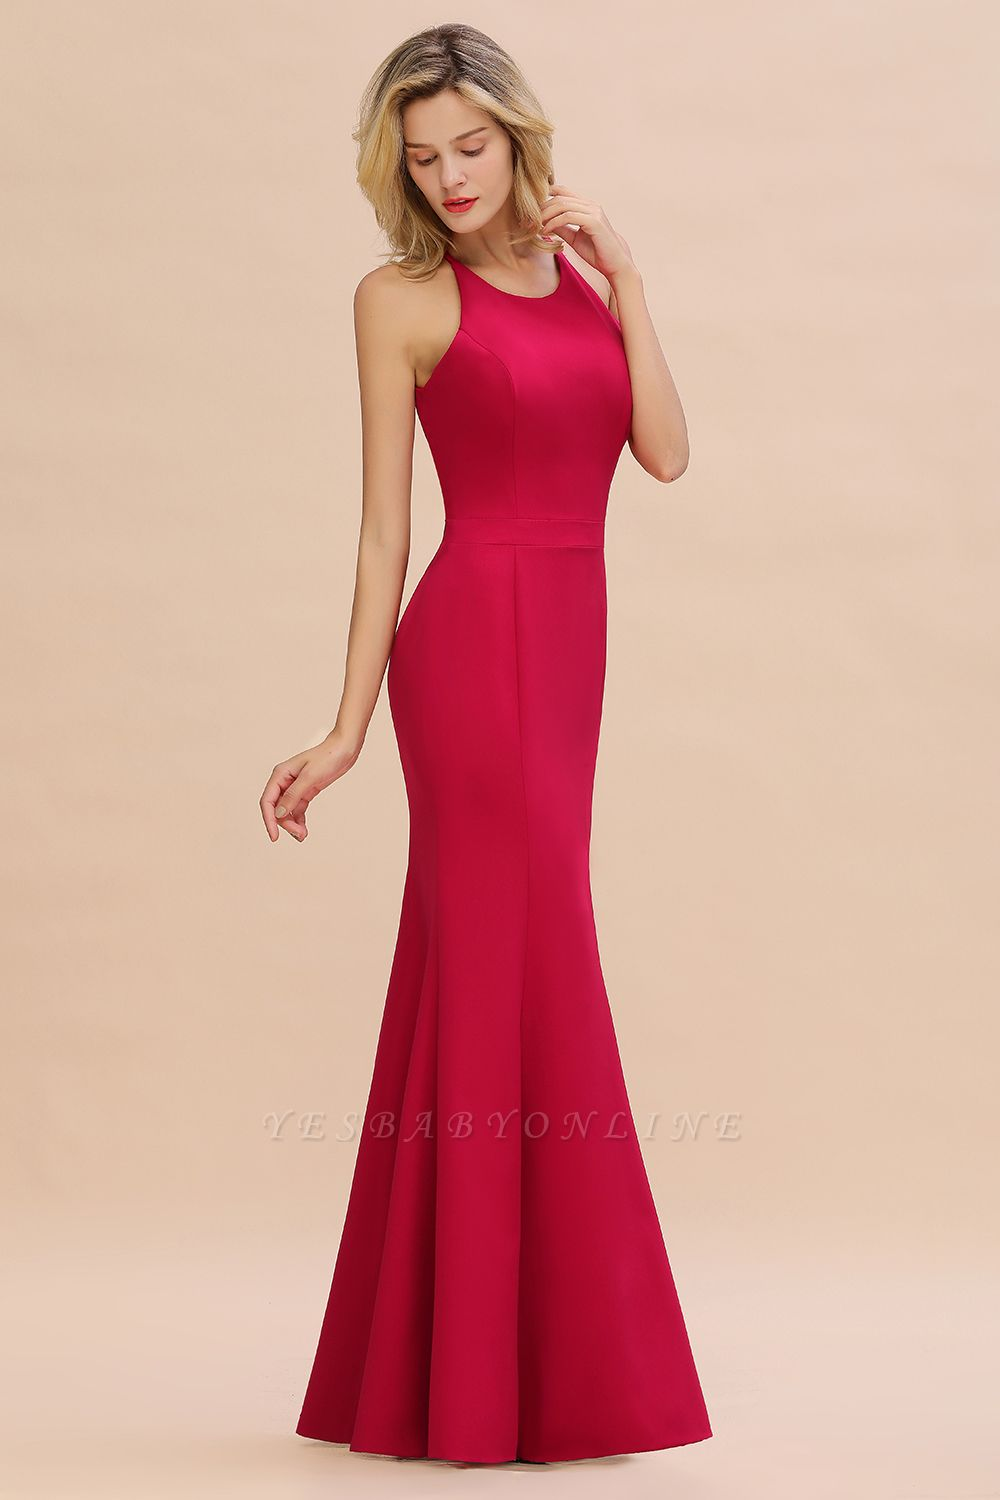 Sexy Red Halter Mermaid Prom Dress Long Evening Gowns Online